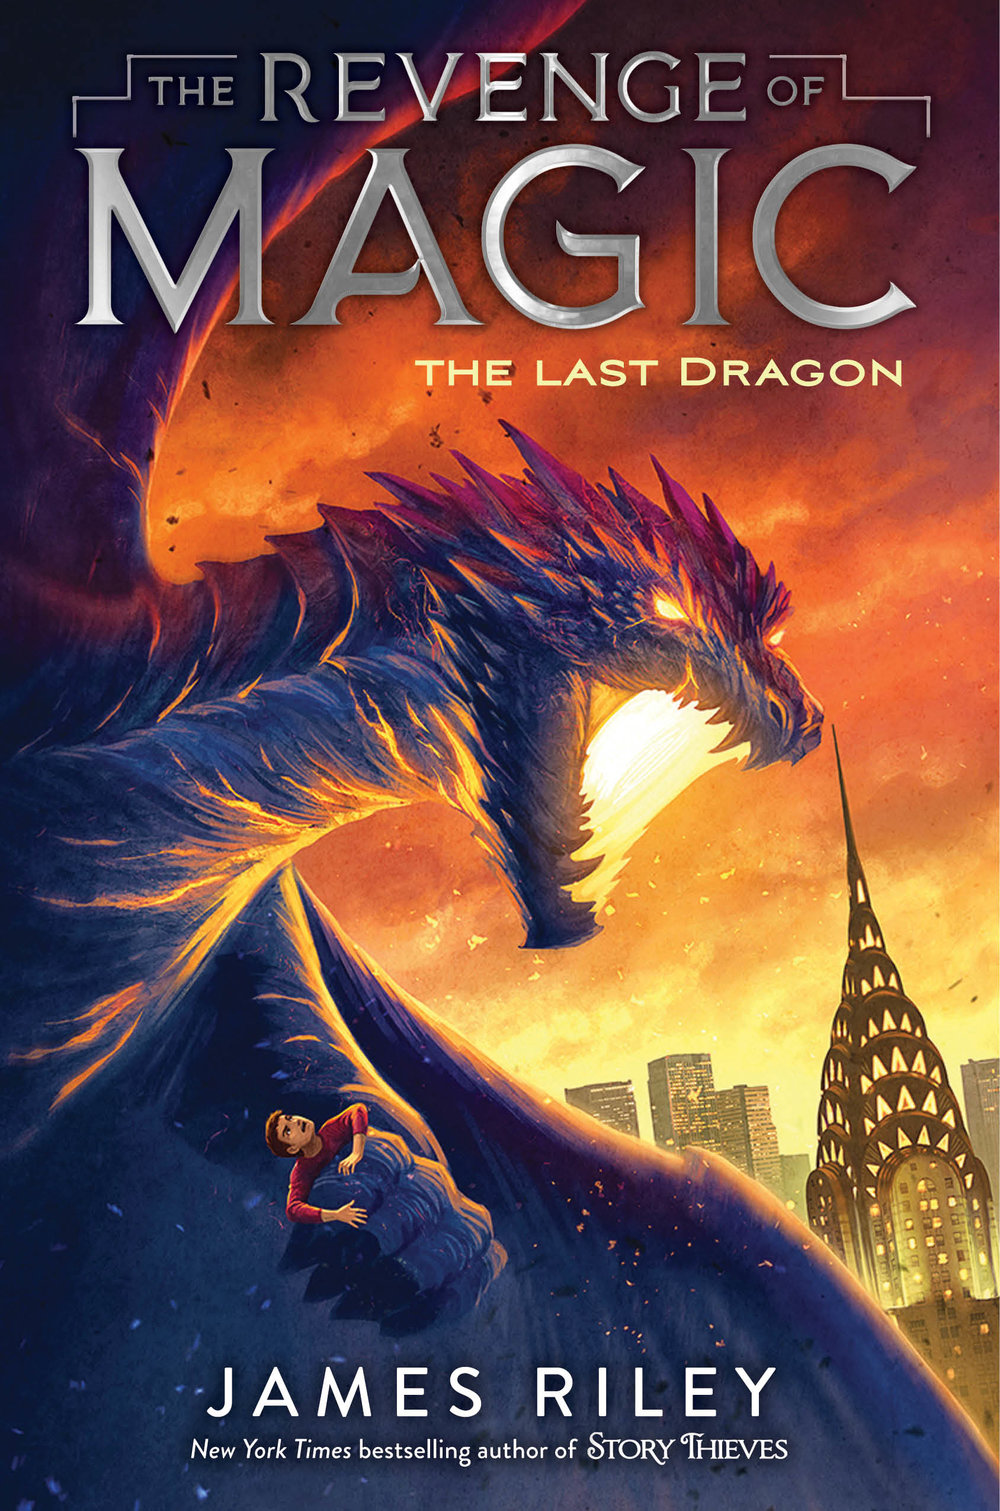 THE LAST DRAGON (BOOK 2) - Fort Fitzgerald can't stop having nightmares about the day his father was taken from him in an attack on Washington, D.C. In these dreams, an Old One, an evil beyond comprehension, demands the location of the last dragon. But other than some dragon skeletons dug up with the books of magic on Discovery Day, Fort has never seen a dragon before. Could there still be one left alive?And weirdly, Fort's not the only one at the Oppenheimer School having these nightmares. His new roommate, Gabriel, seems to know more than he's letting on about this dragon as well. And why does everyone at the school seem to do whatever Gabriel says? What's his secret?Fort's going to need the help of his friends Cyrus, Jia and Rachel, if he's going to have any chance of keeping the Old Ones from returning to Earth. Unless, the Old Ones offer something Fort could never turn down ....Preorders coming soon!